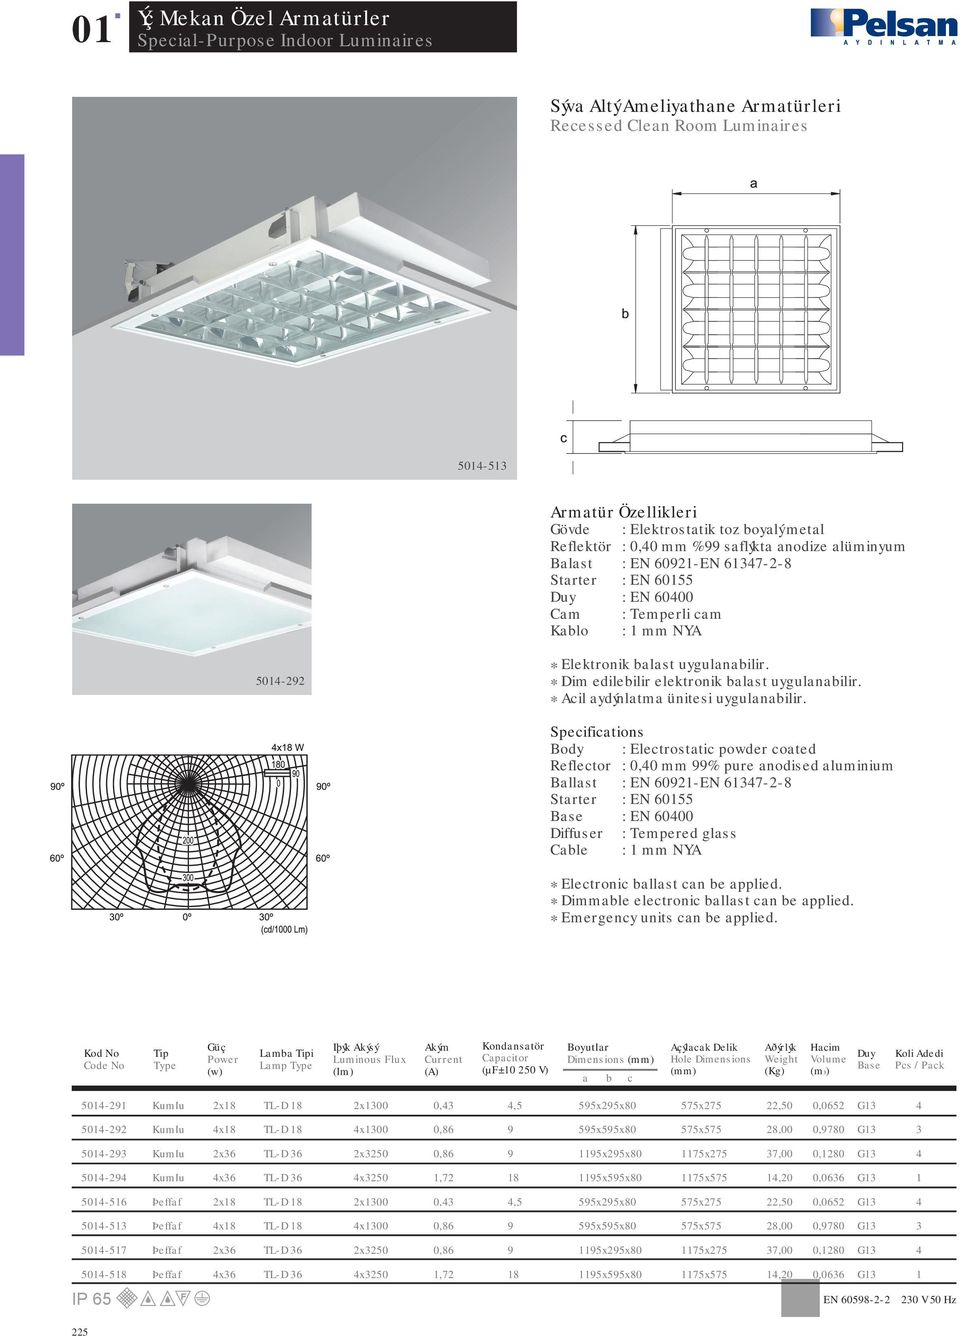 Diffuser : Tempered glass Cable : mm NYA (µf±0 250 V) a b c (m3) 50-28 2x8 TL-D 8 2x300 0,3 0x25x75 8,80 0,27 50-282 x8 TL-D 8 x300 0x50x75 35,80 0,53 50-283 235x25x75 3,00 0,588 50-28 x3